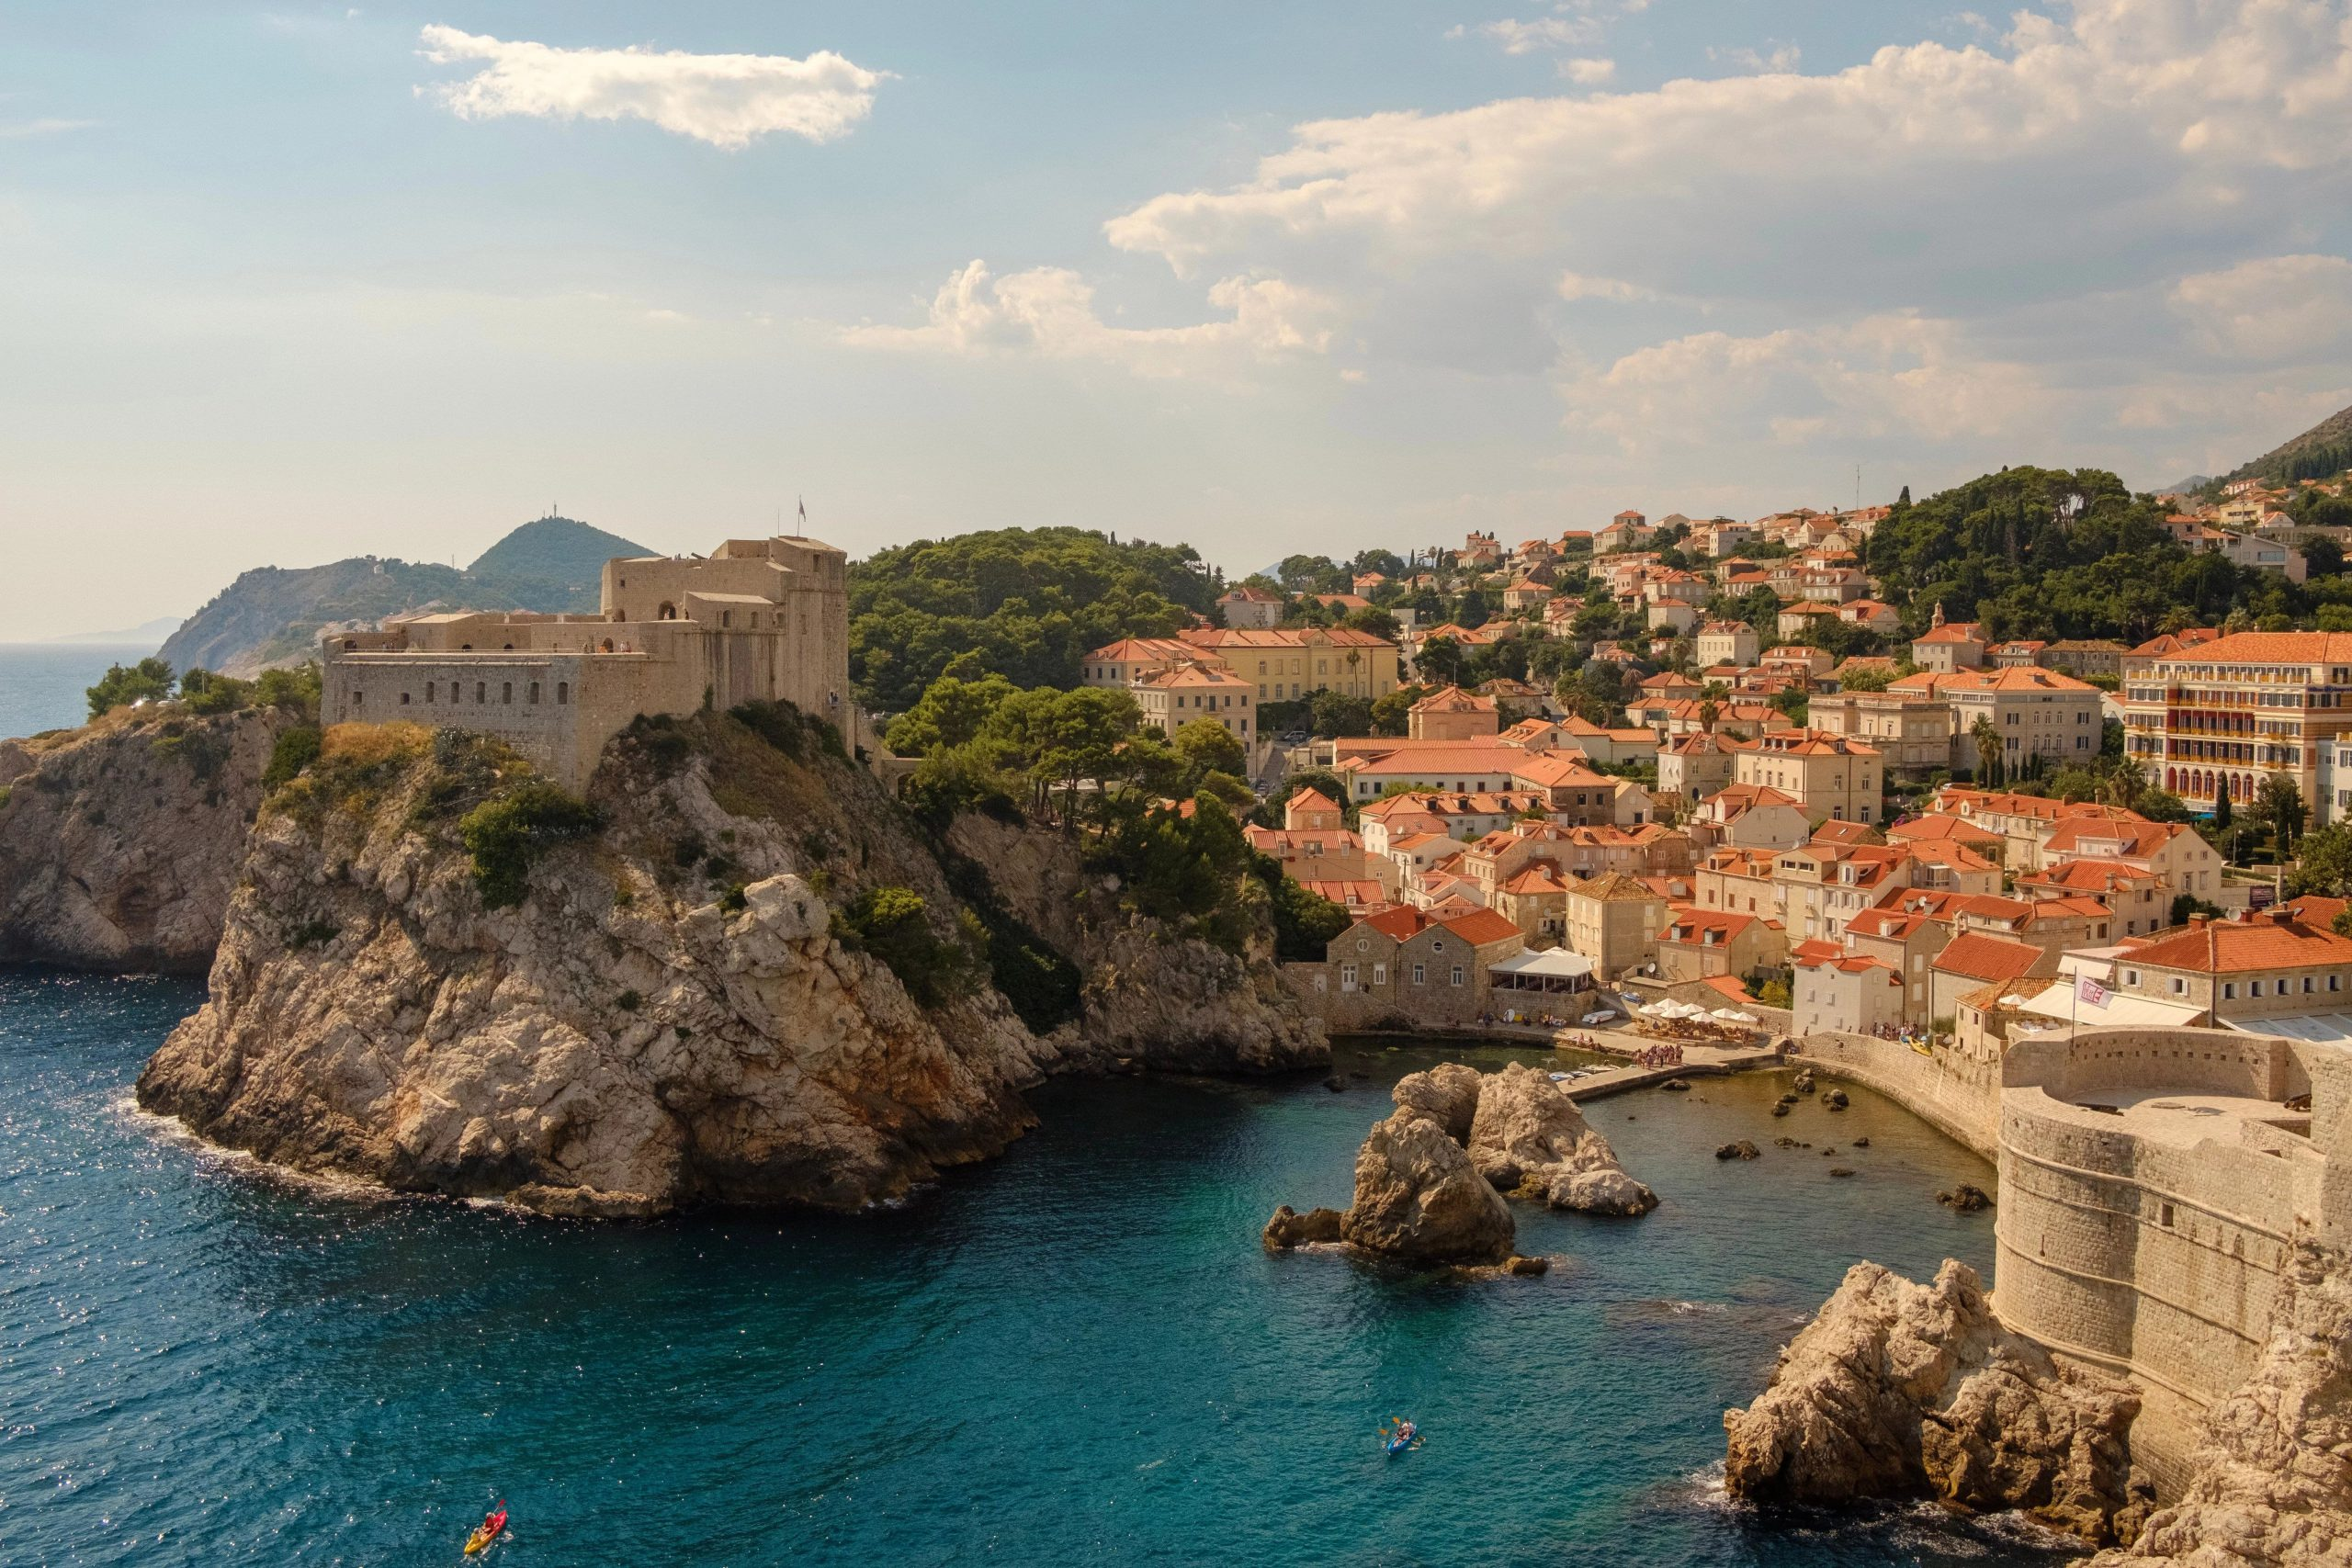 Dubrovnik, Croatia. The site used for Kings Landing in Game of Thrones